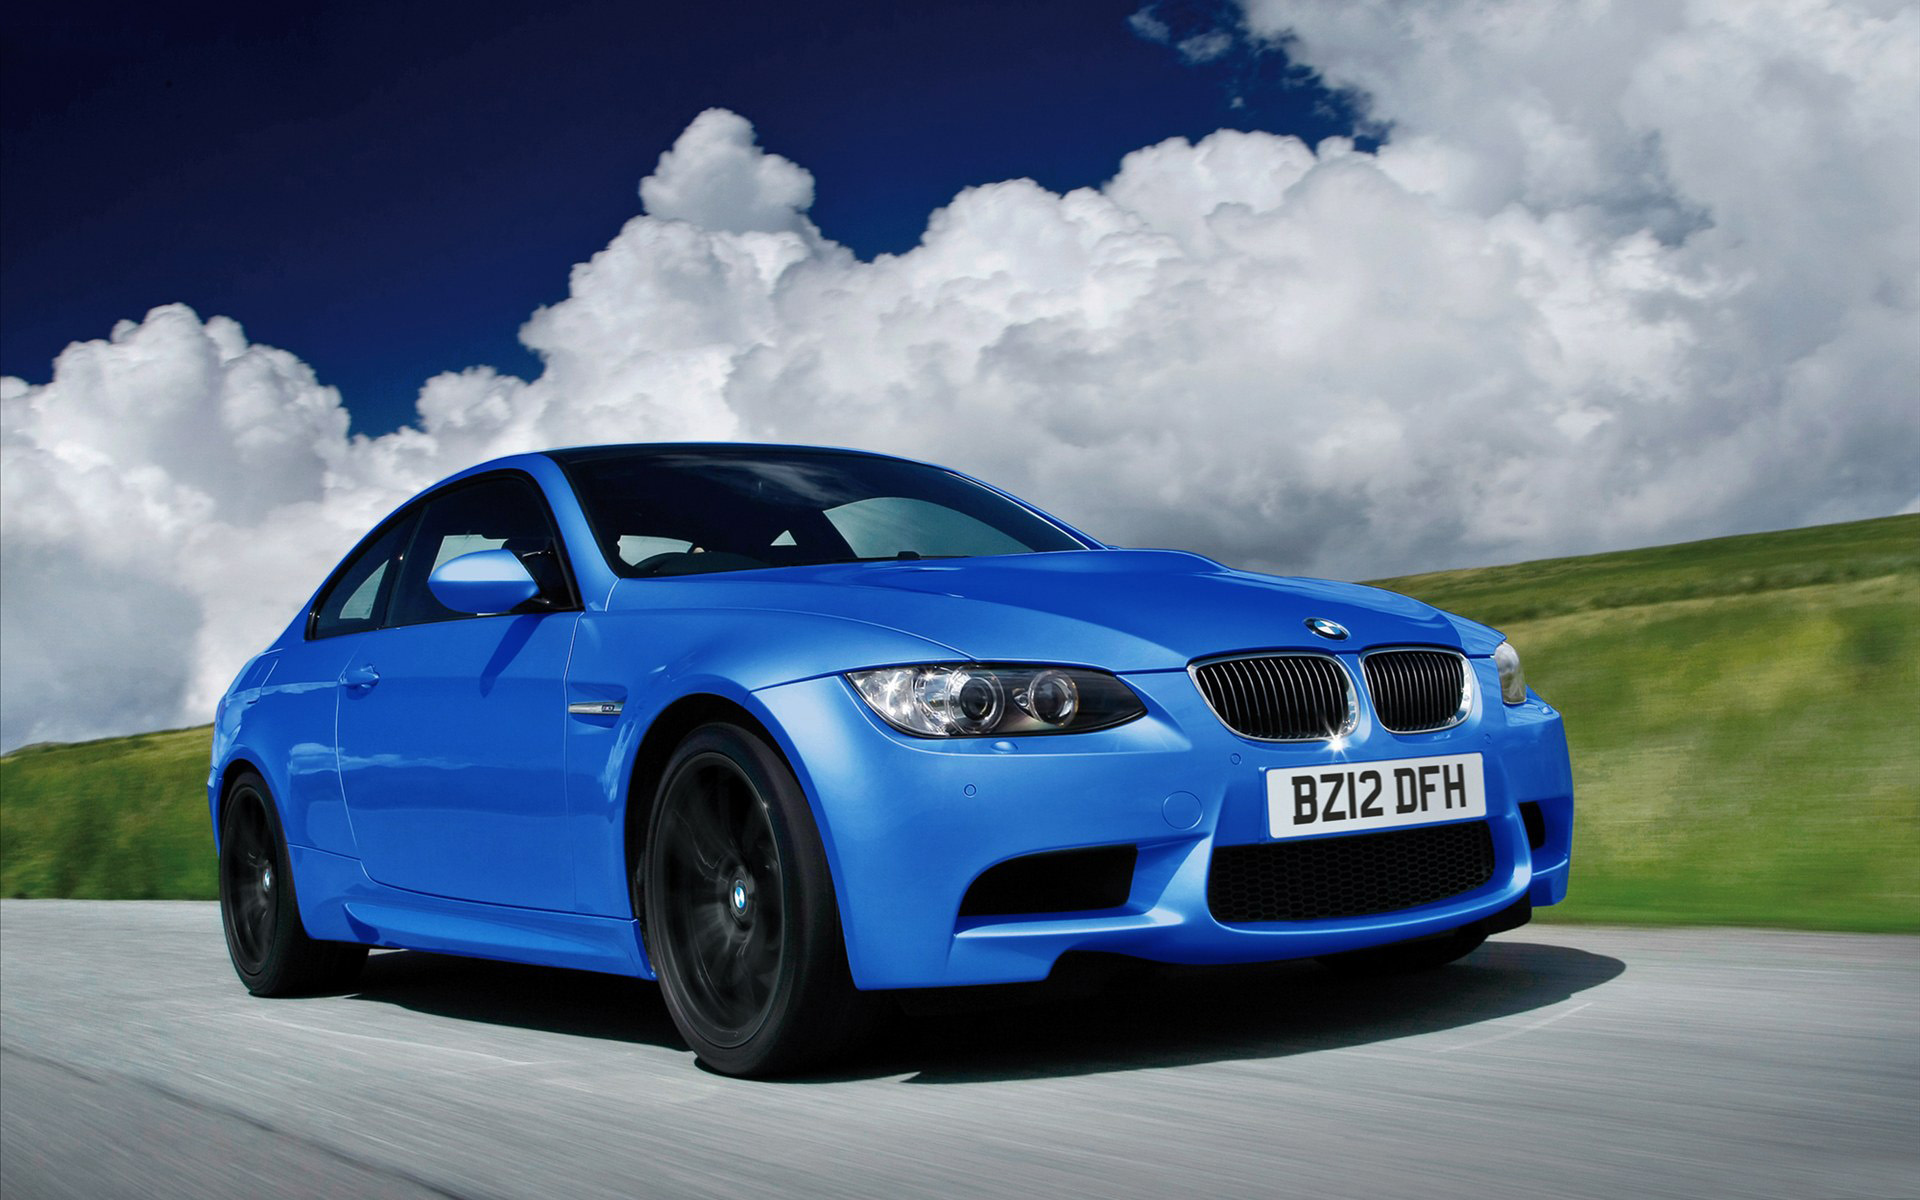 Bmw M Gtr Hd Picture Wallpaper Feel Free To Use Bmw M Gtr Hd